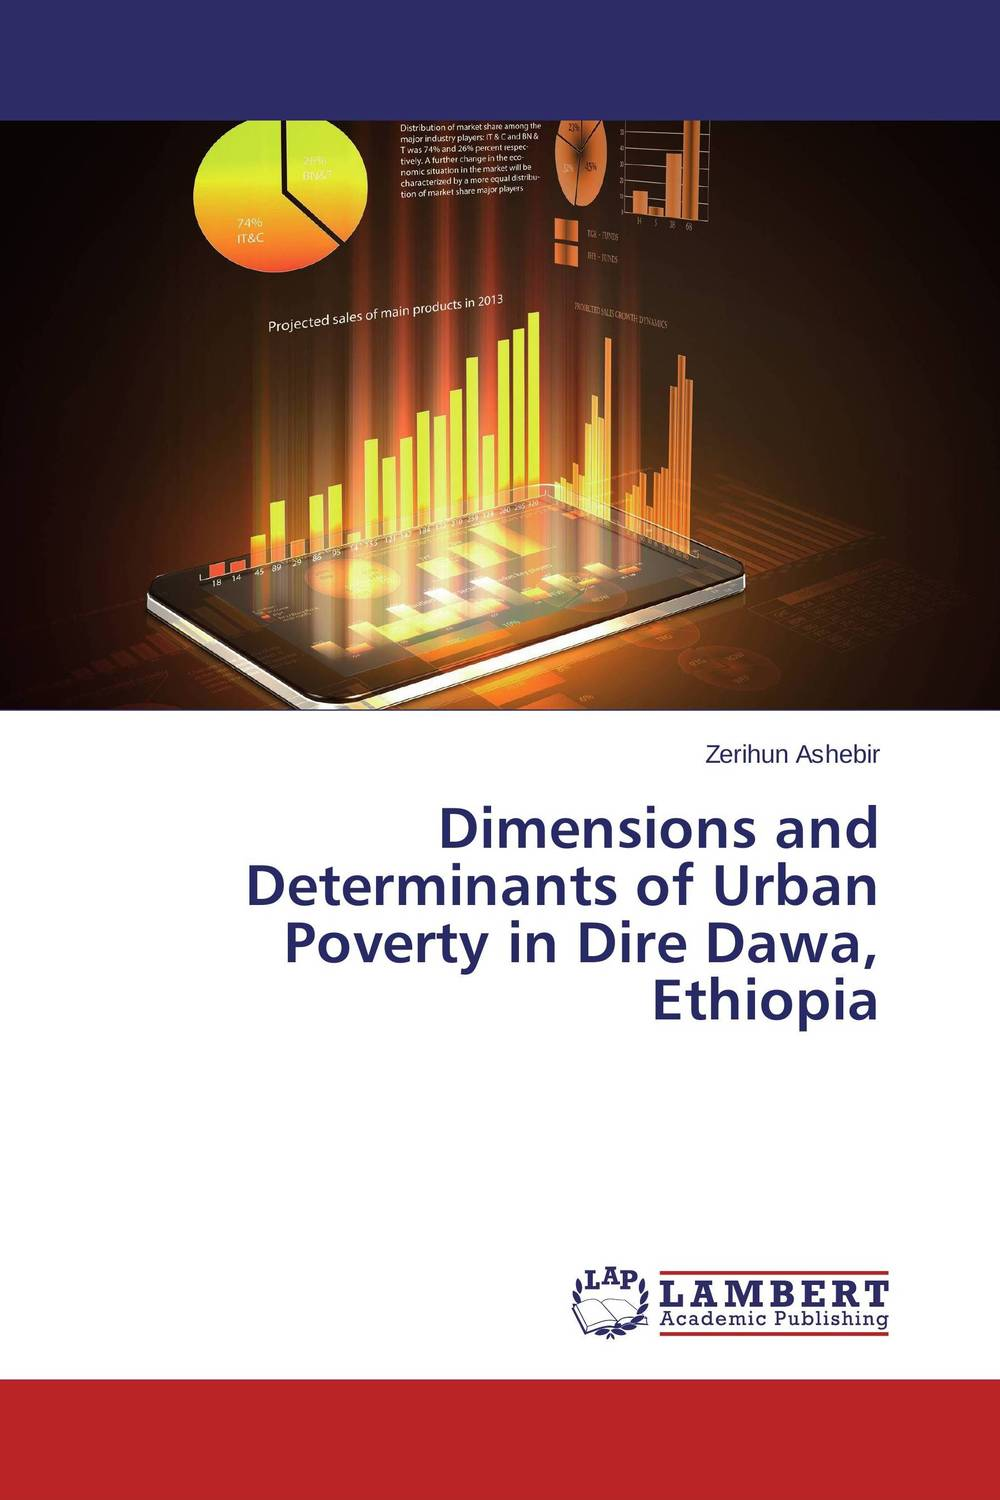 Dimensions and Determinants of Urban Poverty in Dire Dawa, Ethiopia